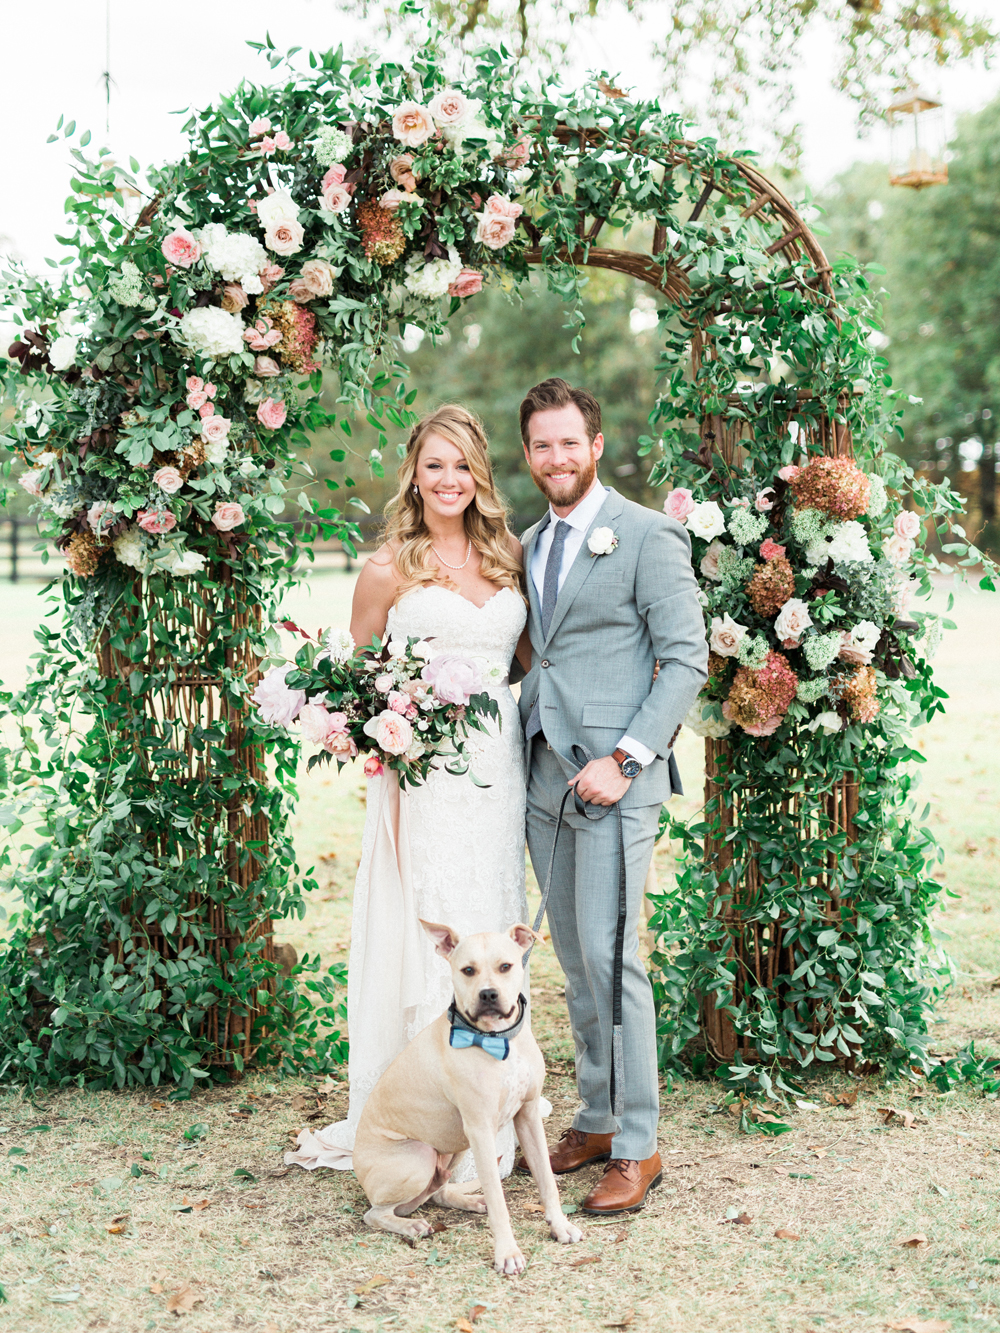 Picturesque Garden Wedding at White Sparrow Barn - photo by Elisabeth Carol Photography http://ruffledblog.com/picturesque-garden-wedding-at-white-sparrow-barn